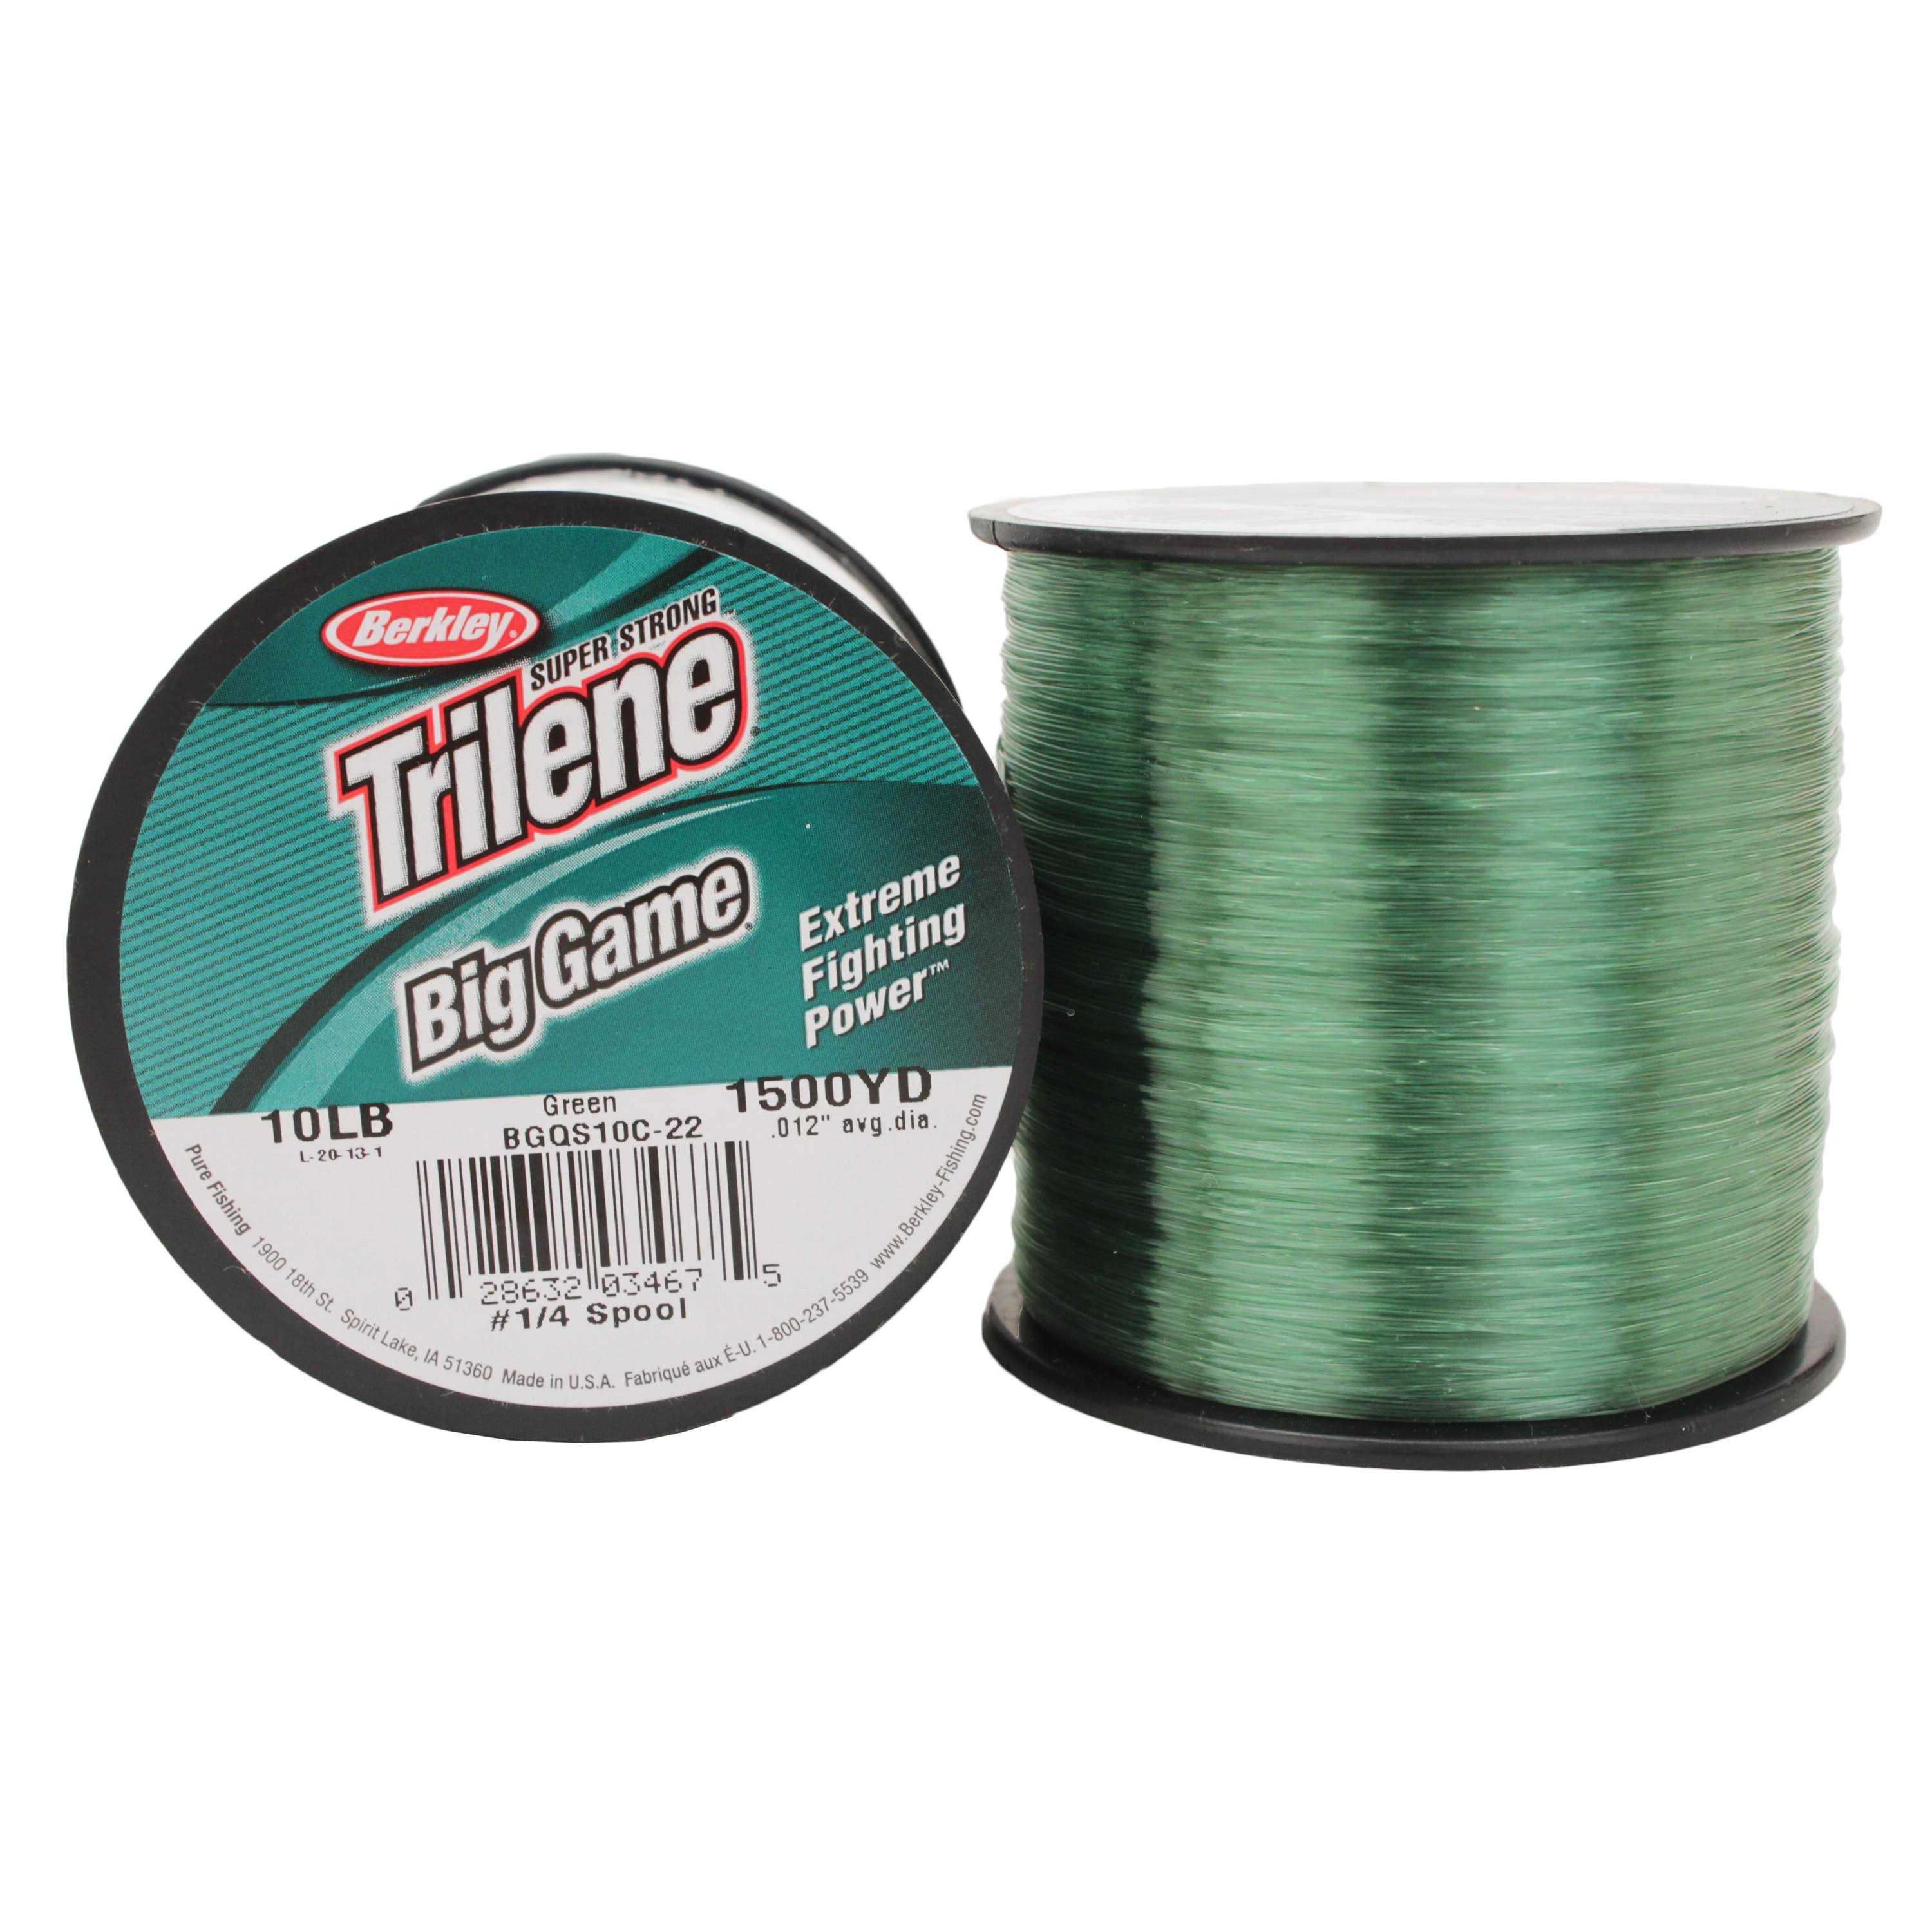 Berkley Trilene Big Game Monofilament Custom Spool - Green, 1500yds